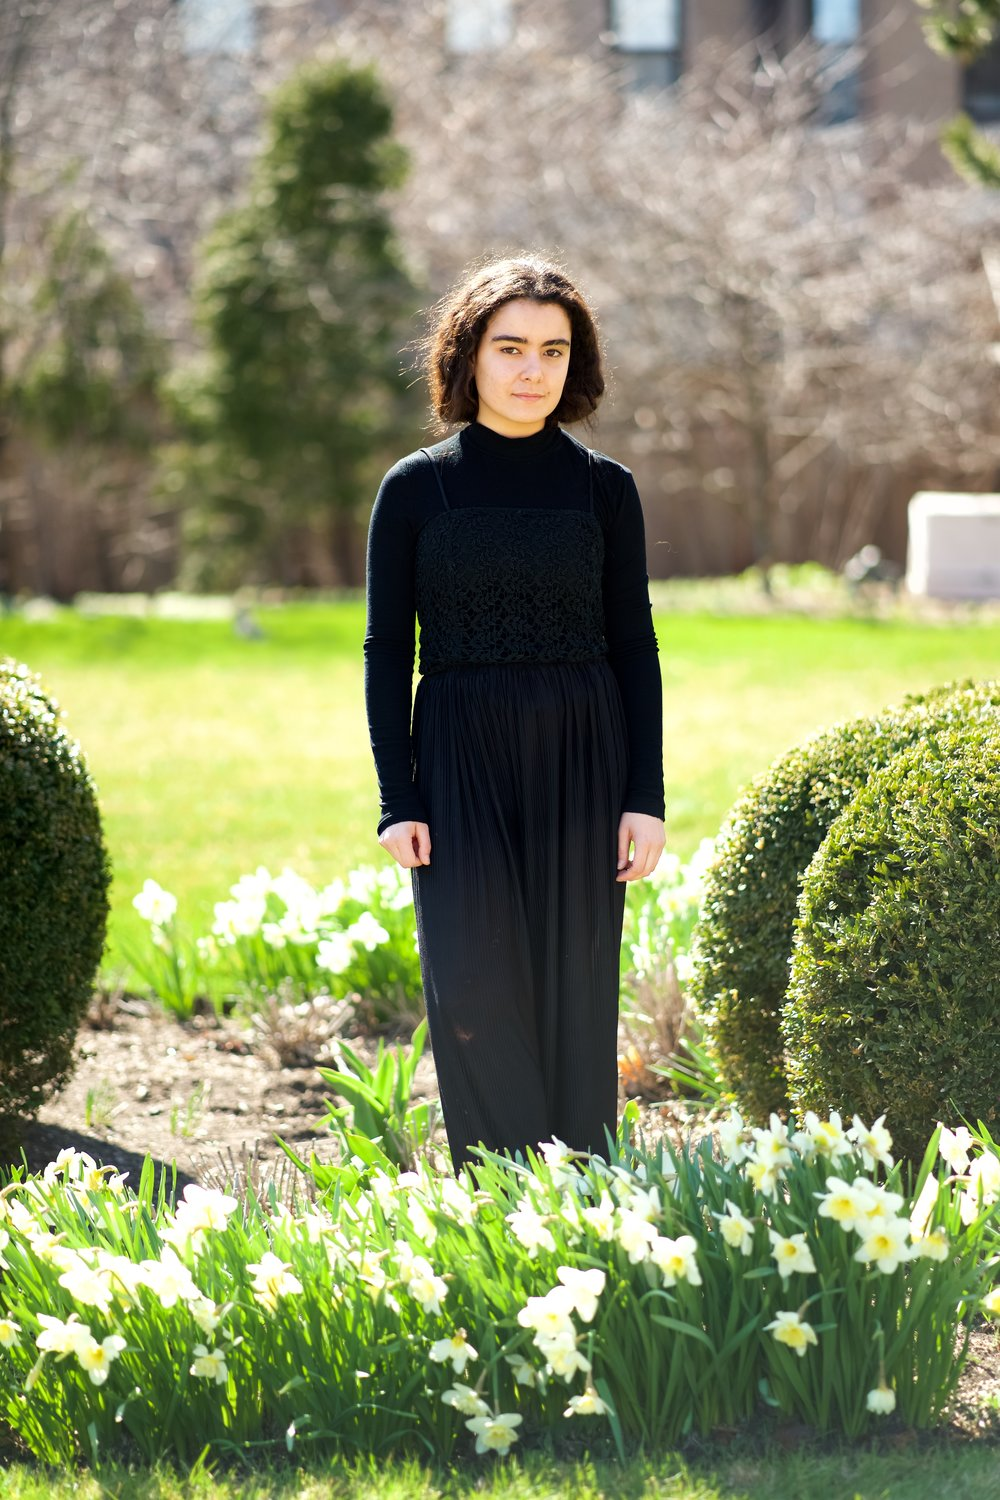 For this look, I am wearing a Worthington wool coat (thrifted), a Zara Basic ribbed mock neck long-sleeve shirt, a black lace top passed down from my mom (probably custom-made) and Uniqlo wool cropped wide-leg trousers.